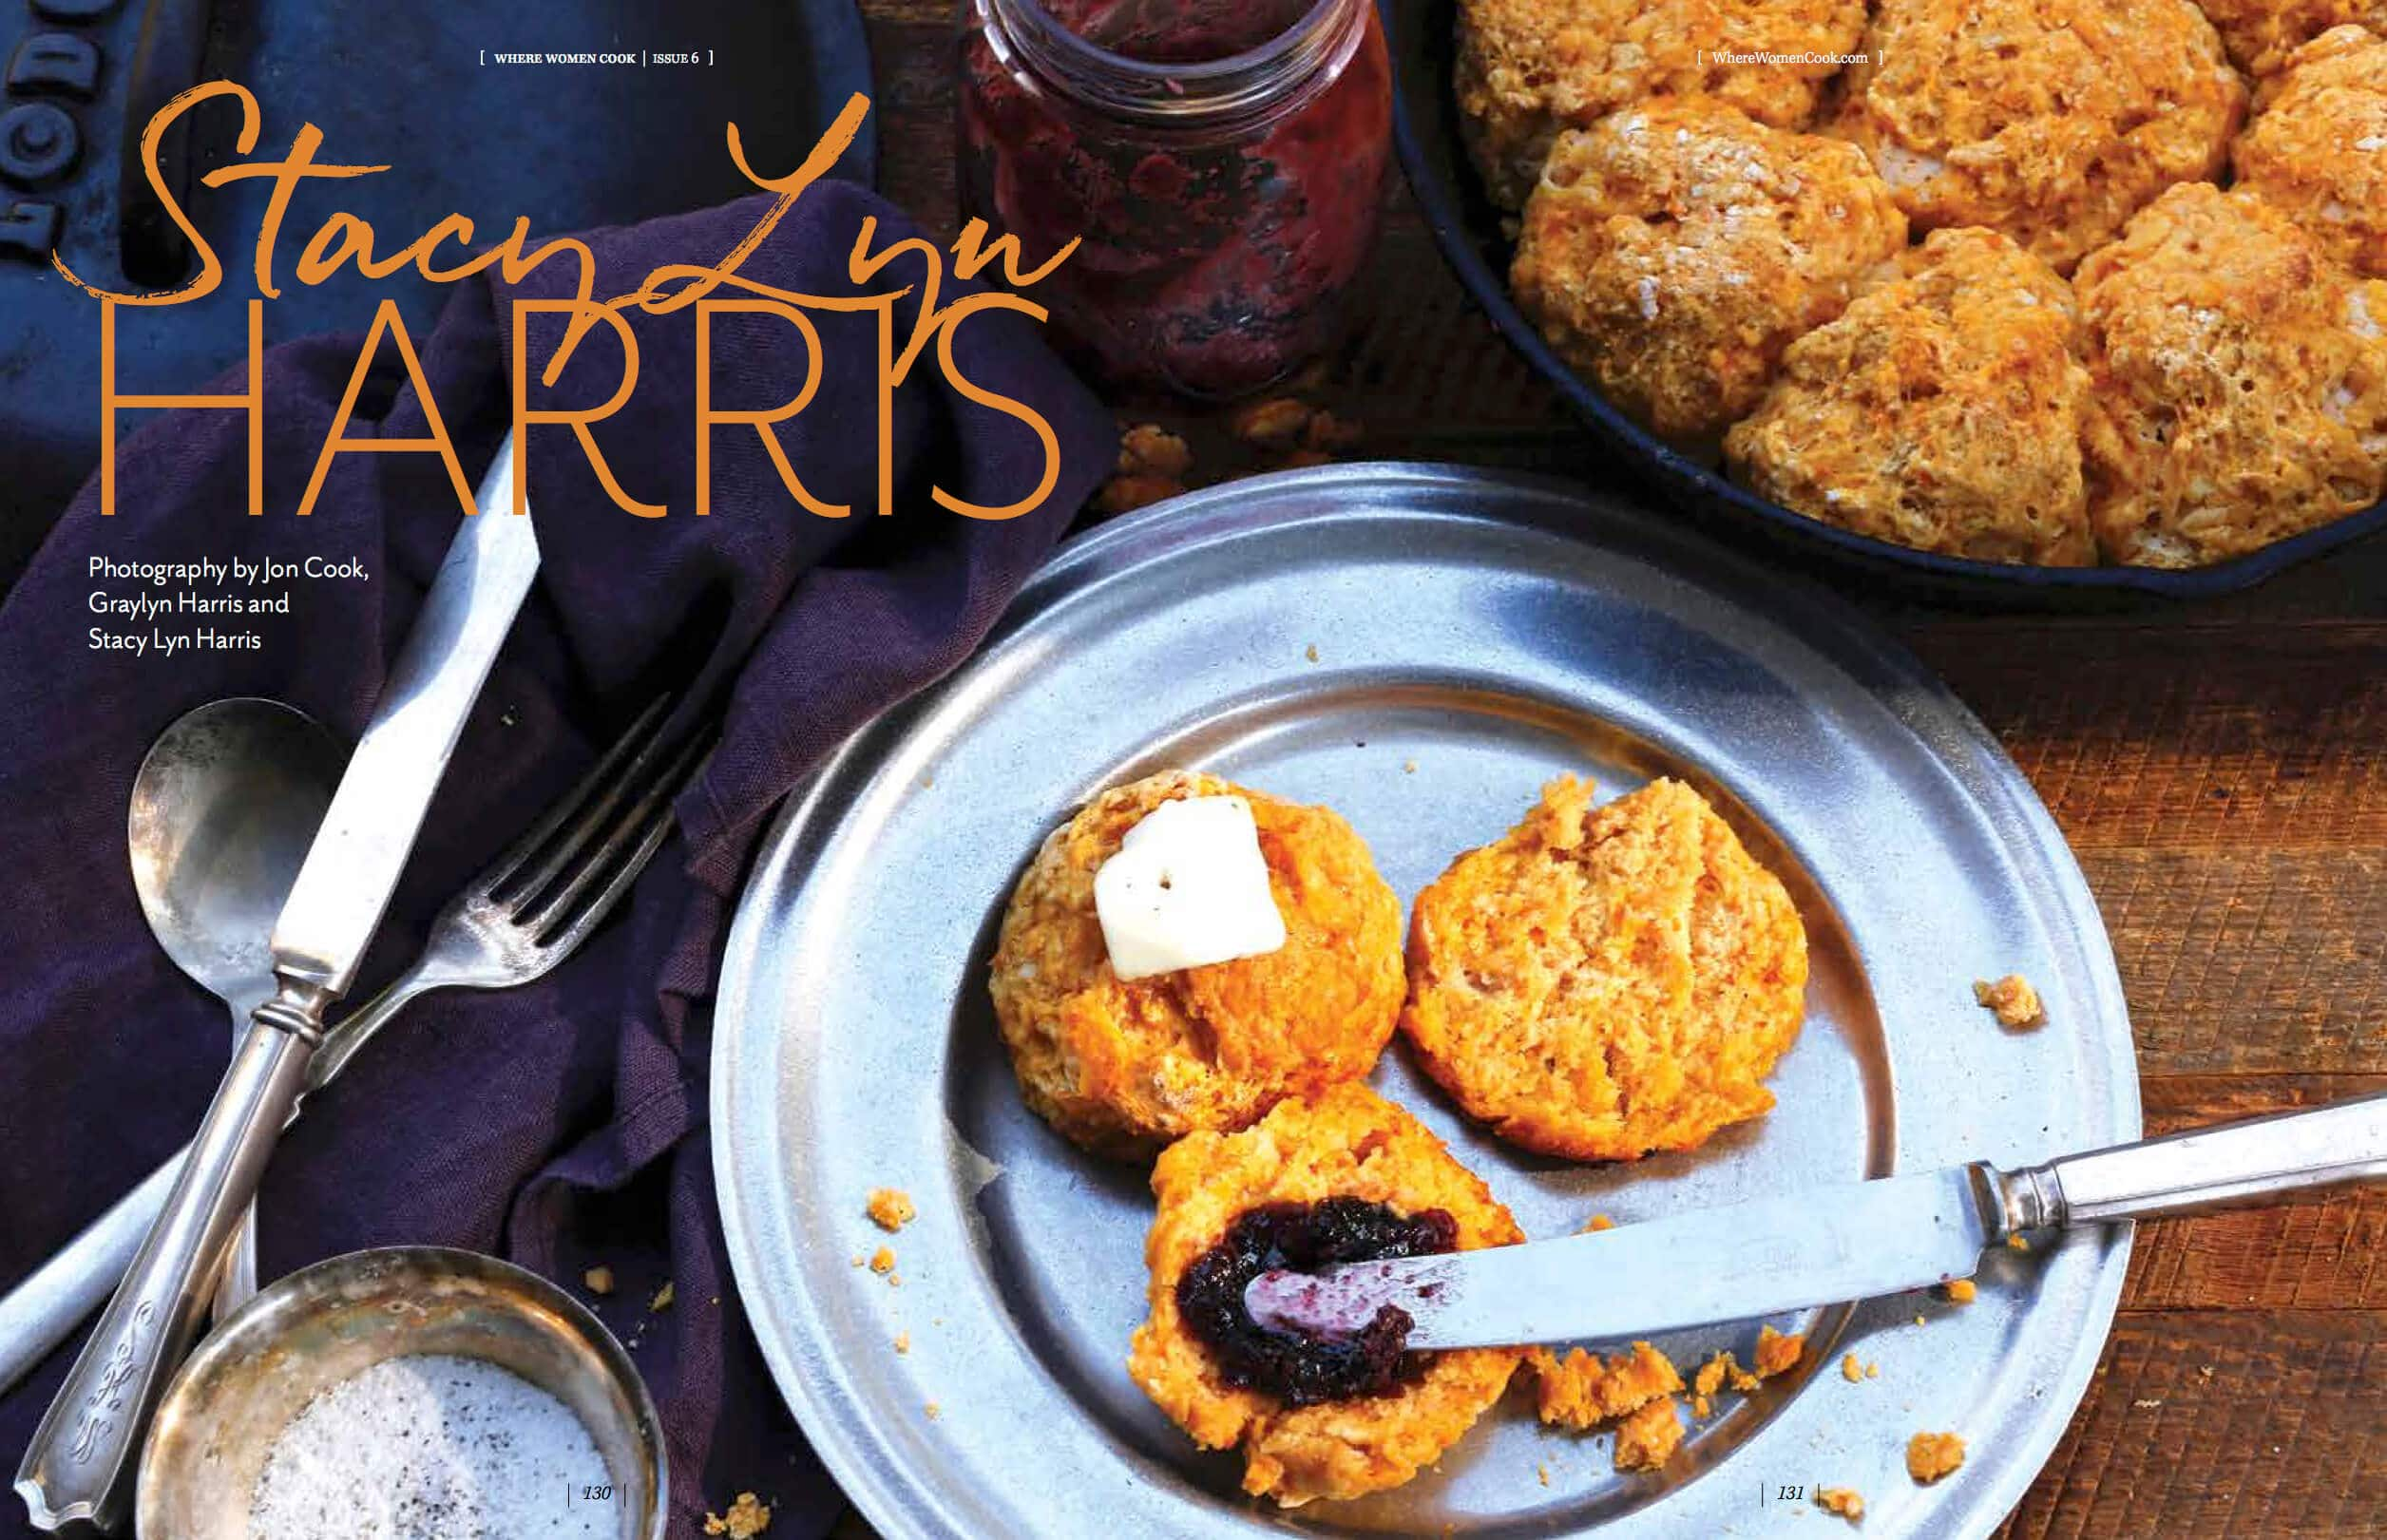 Where Women Cook Spring 2019 magazine featuring Stacy Lyn Harris